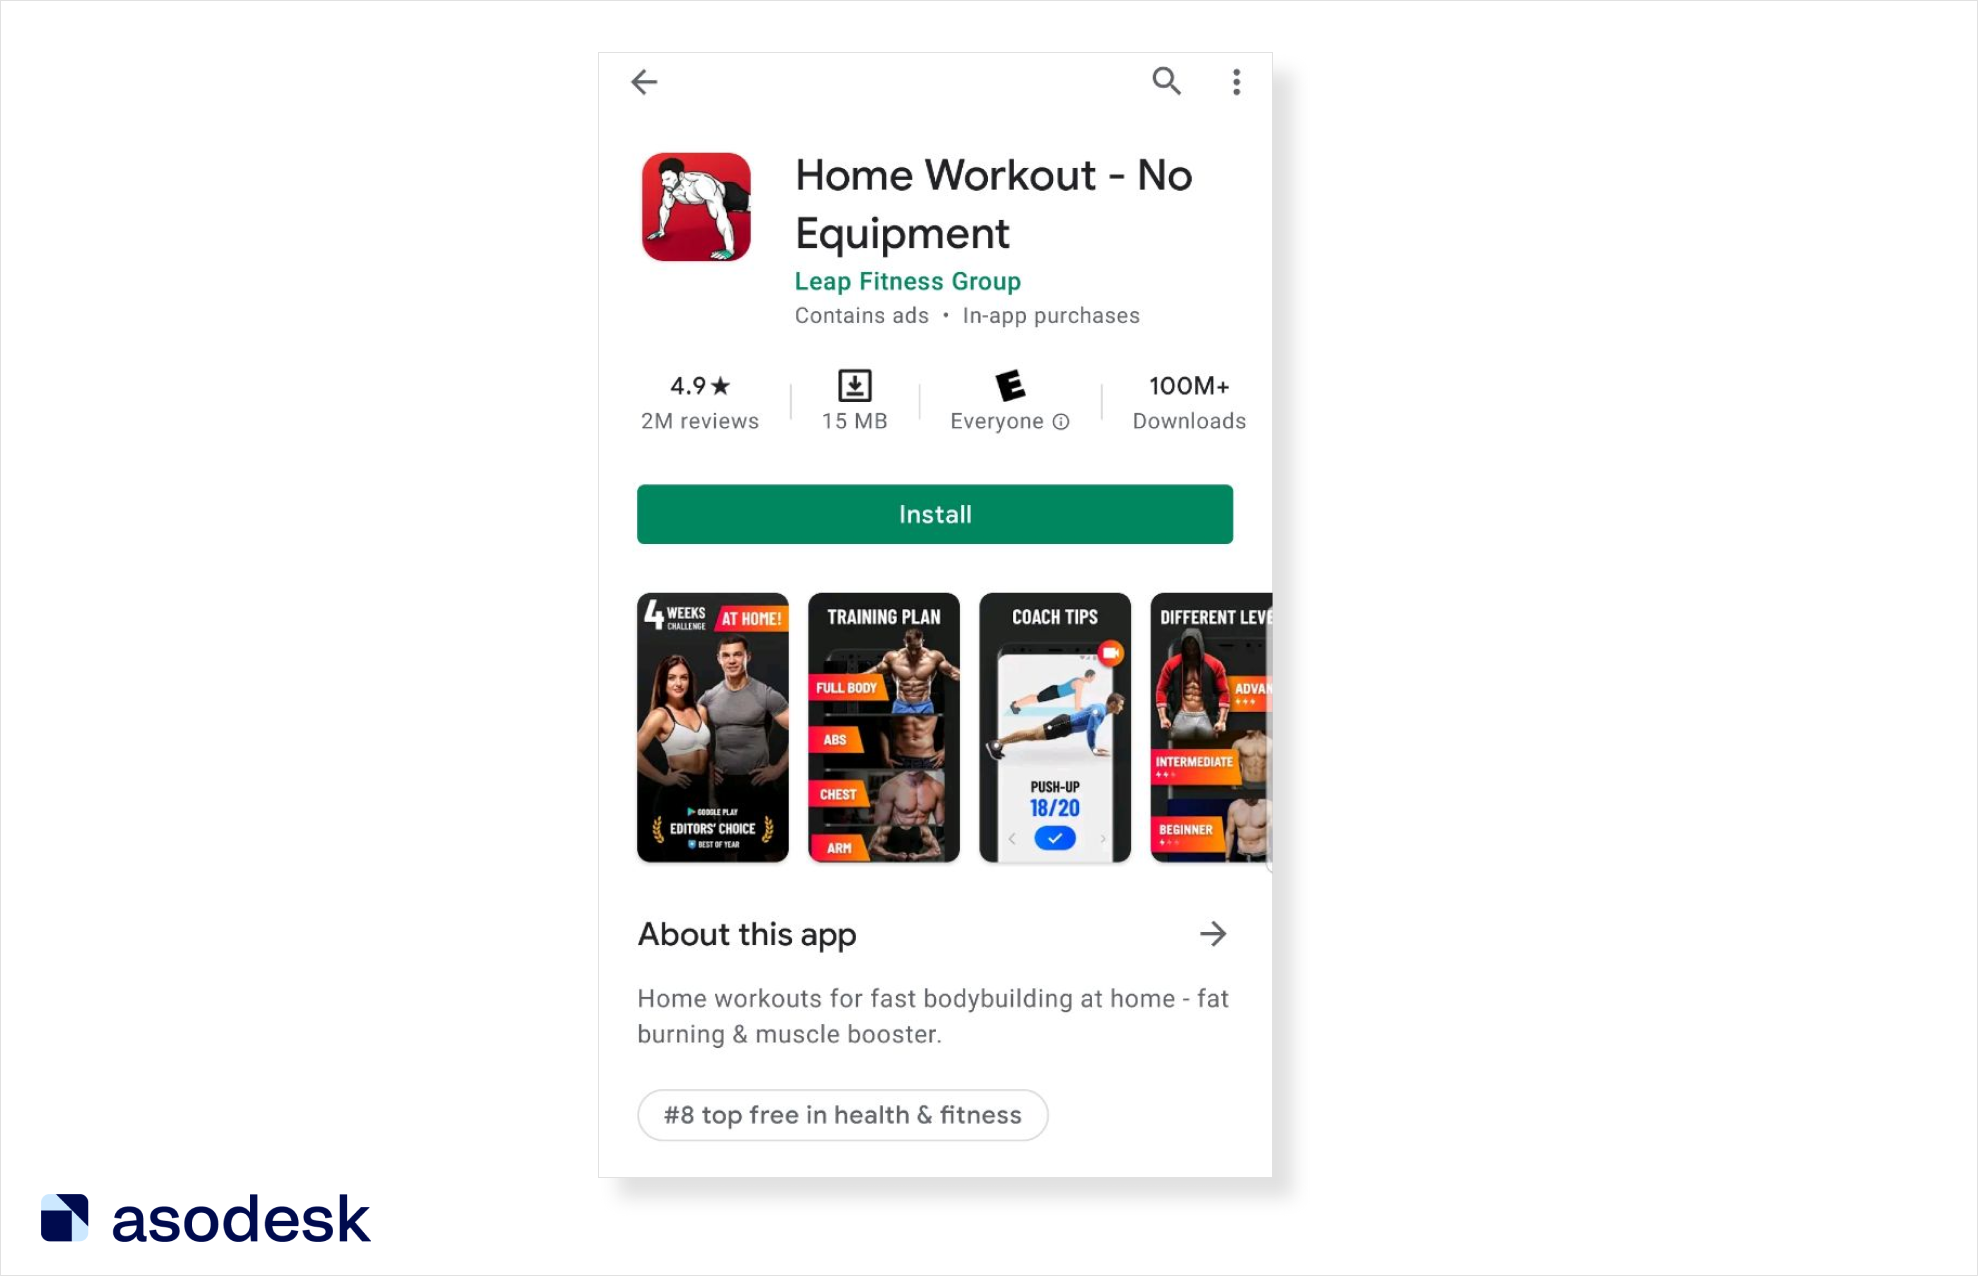 Home Workout page on Google Play